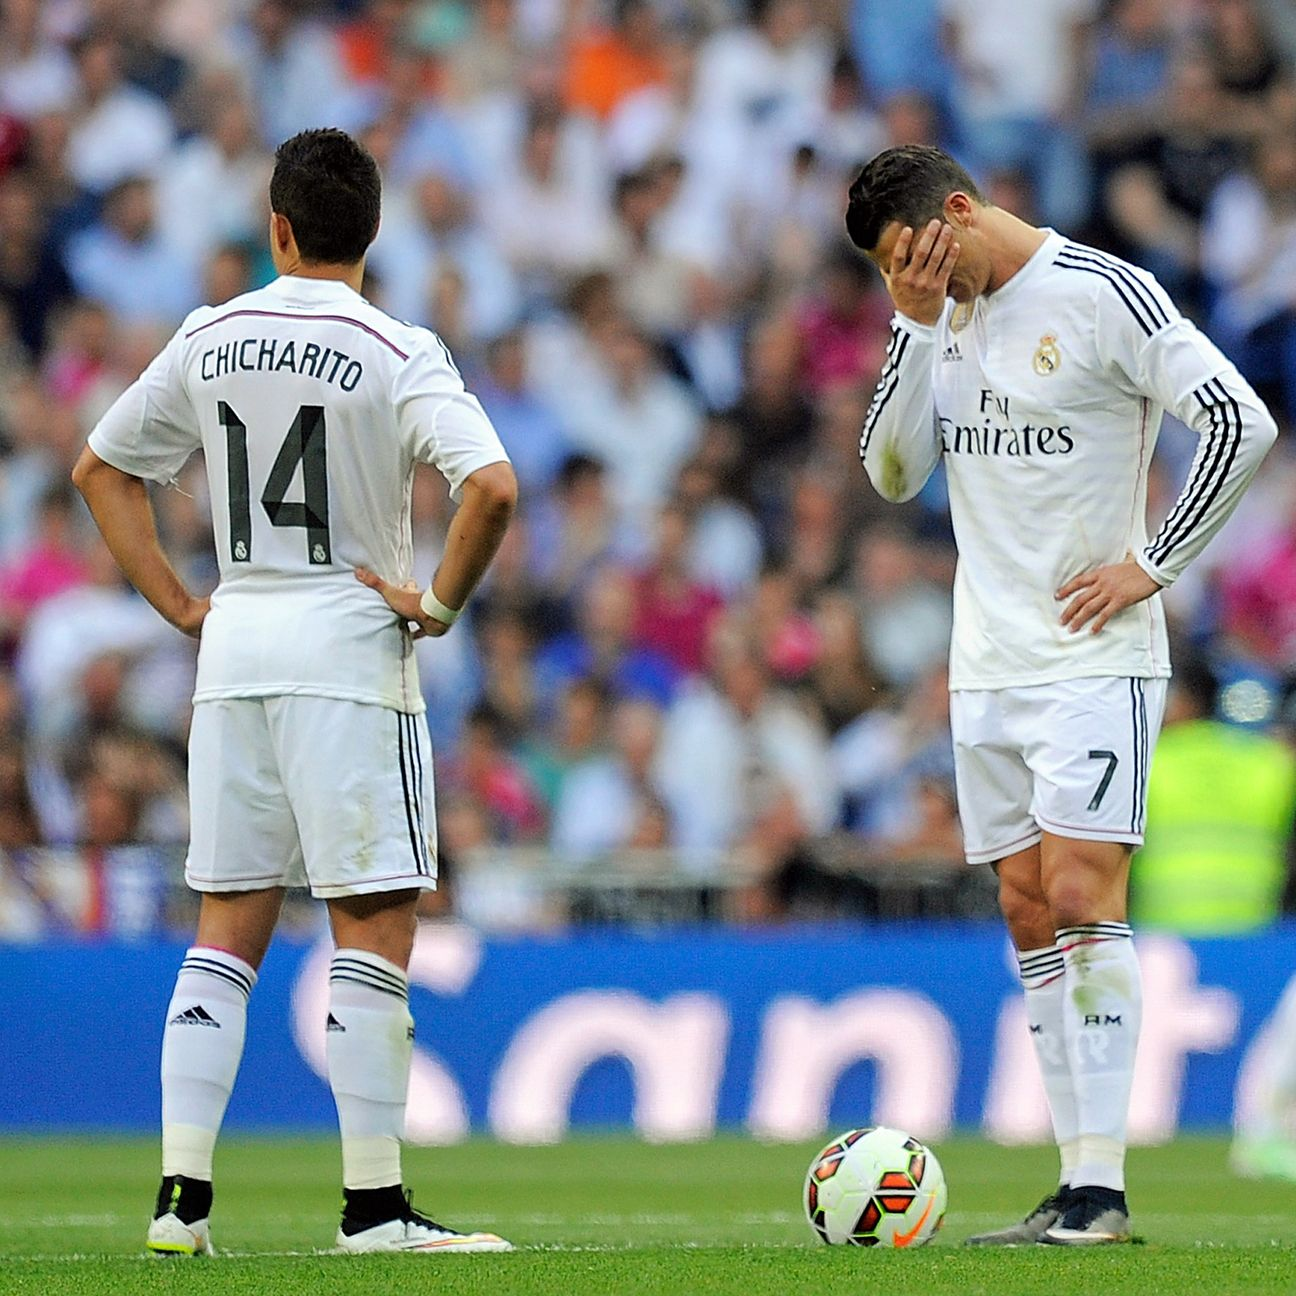 Real Madrid's league title hopes are all but over following Saturday's 2-2 draw with Valencia.